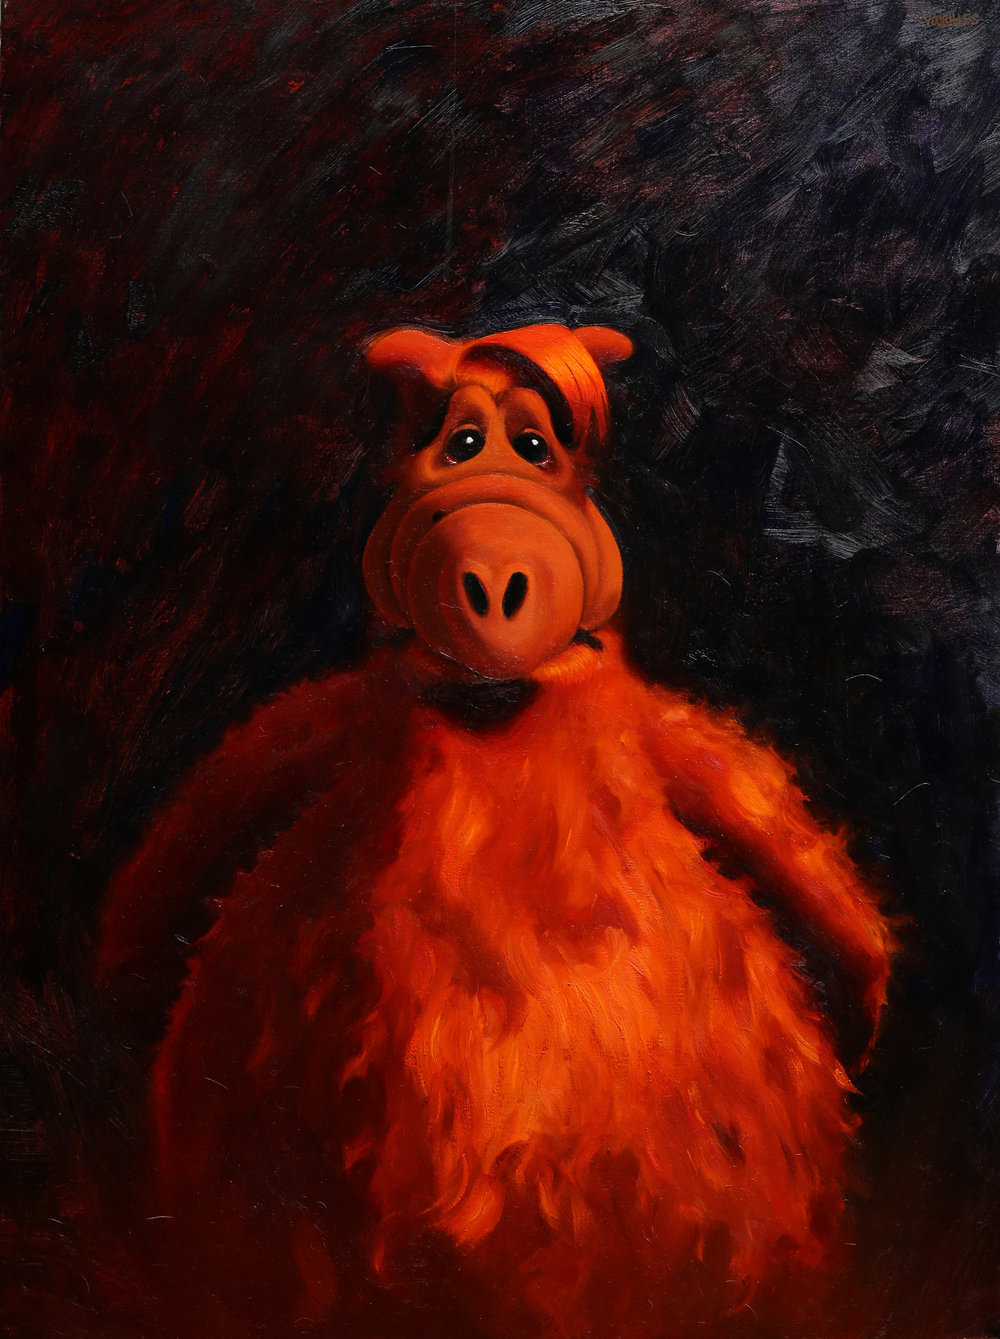 Sad Alf  oil on canvas  40 x 30 inches